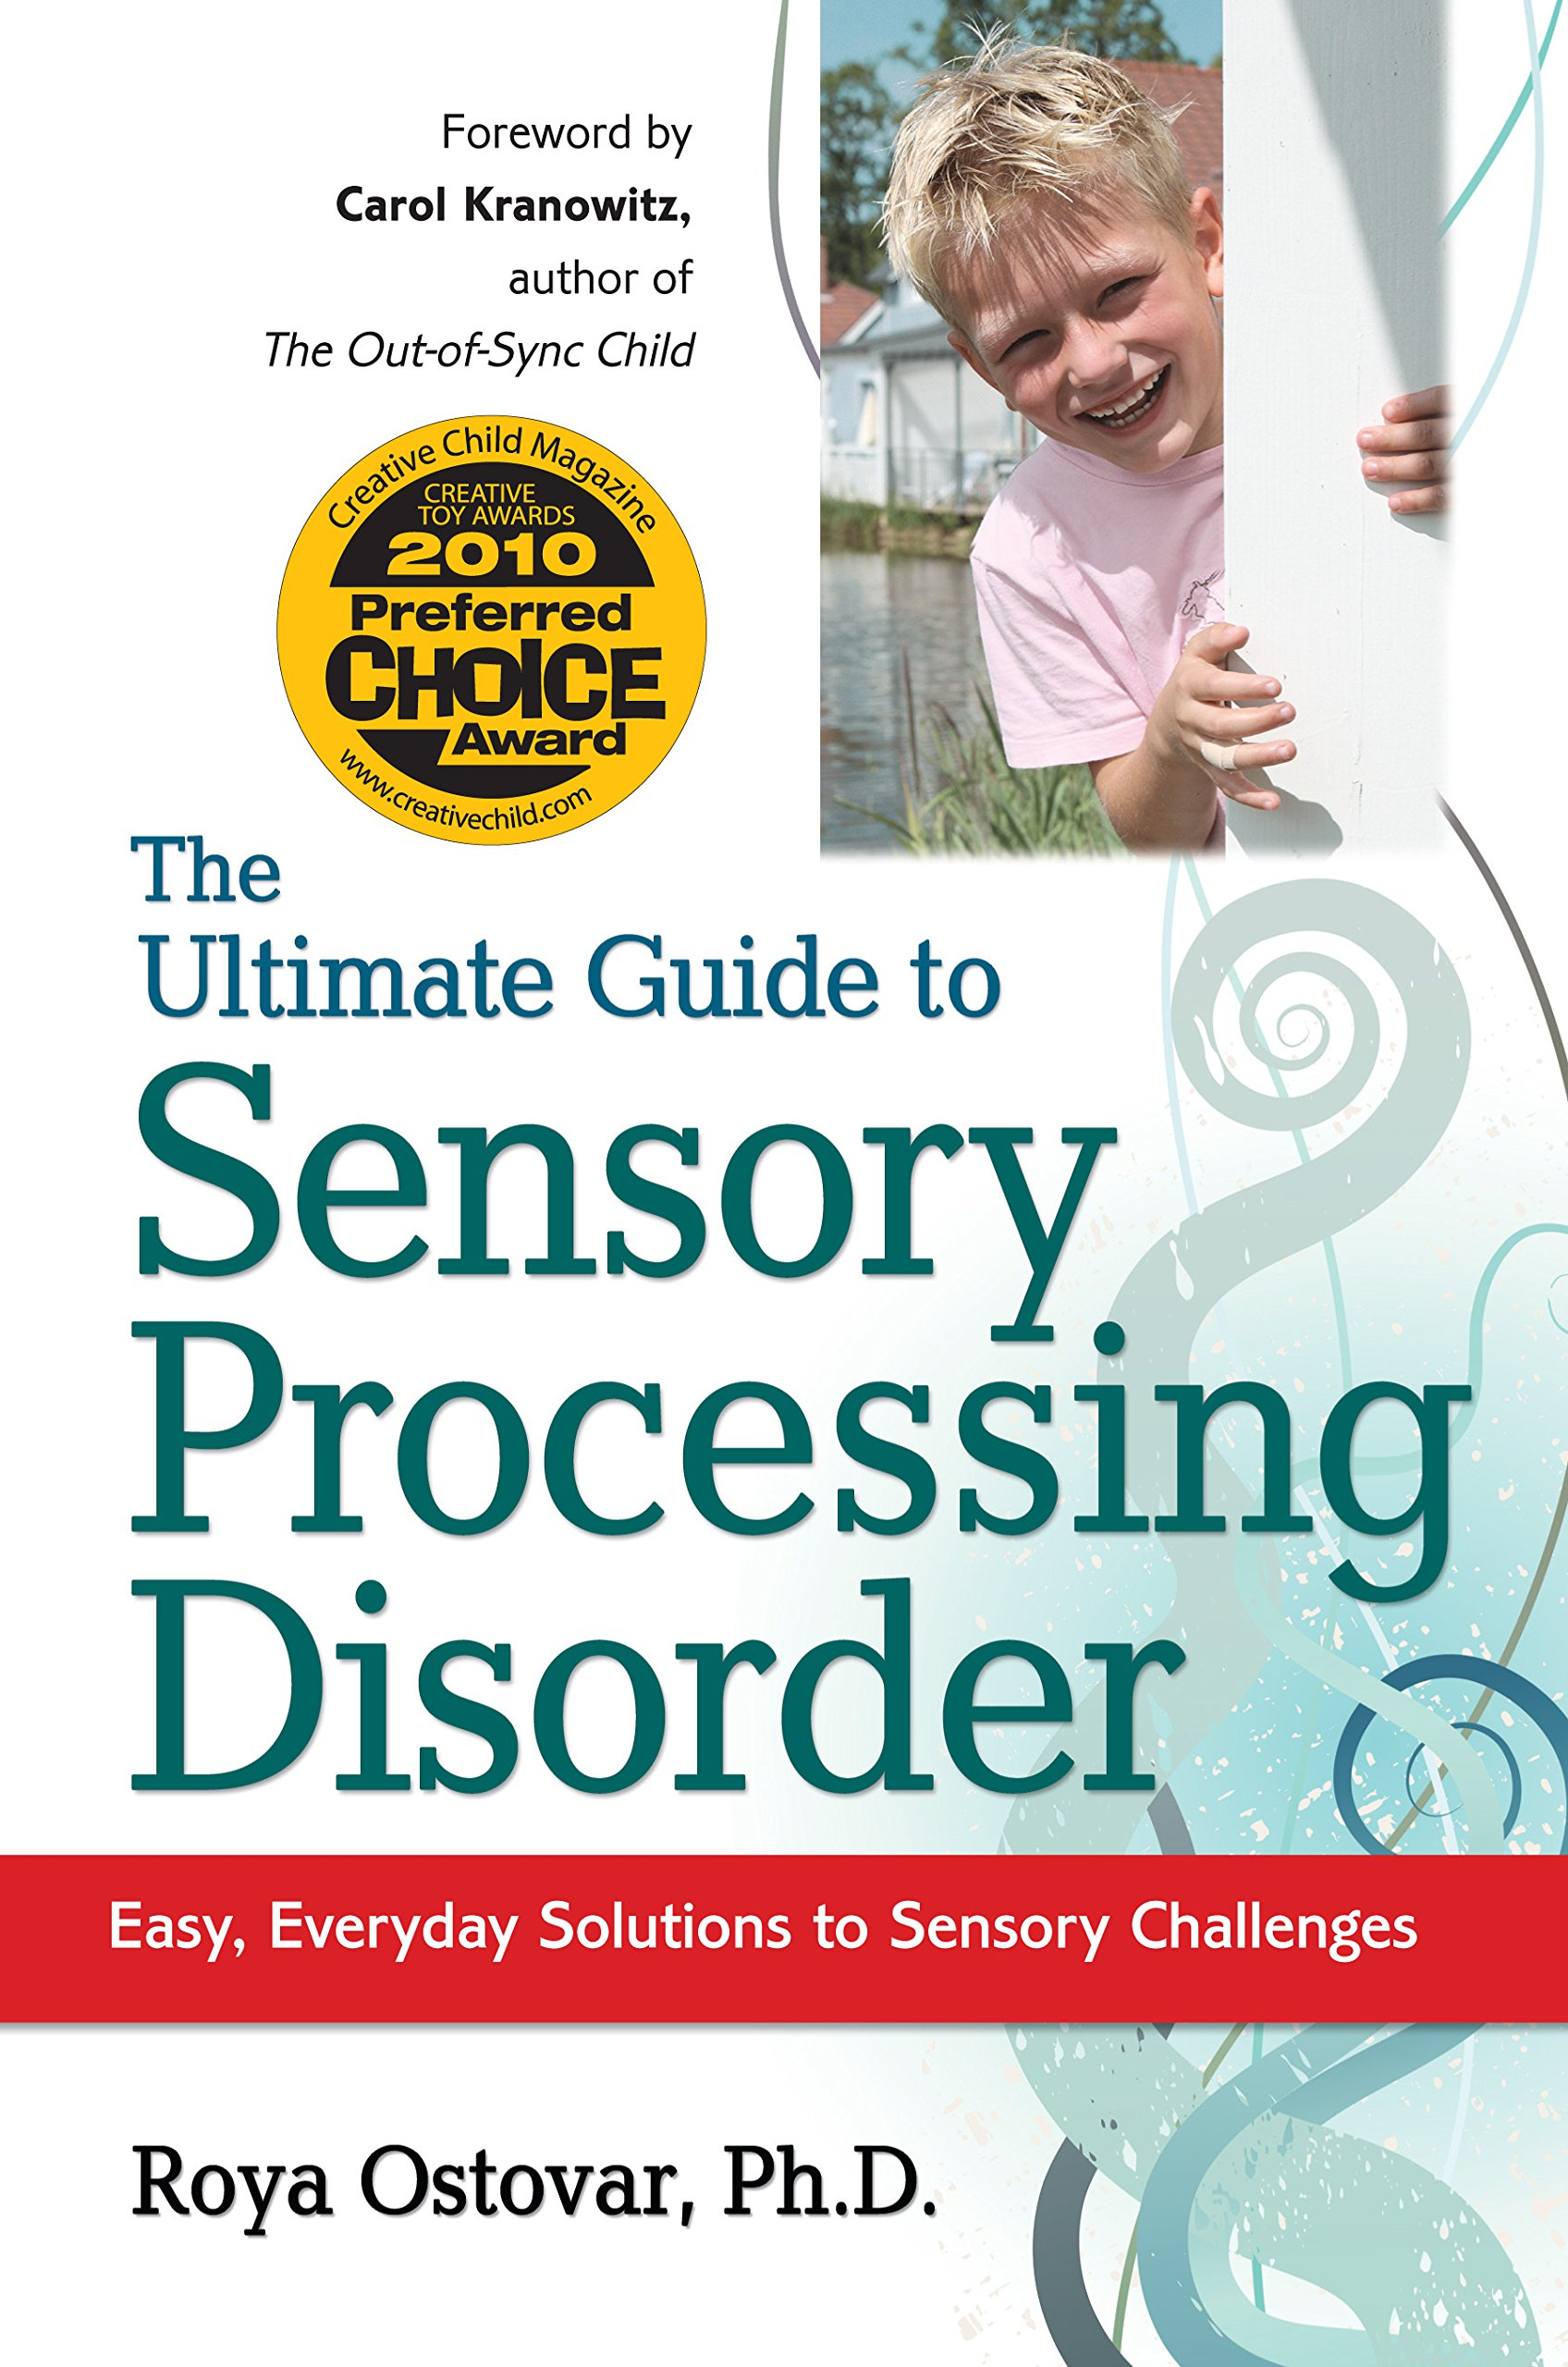 The Ultimate Guide to Sensory Processing Disorder: Easy, Everyday Solutions to Sensory Challenges ebook